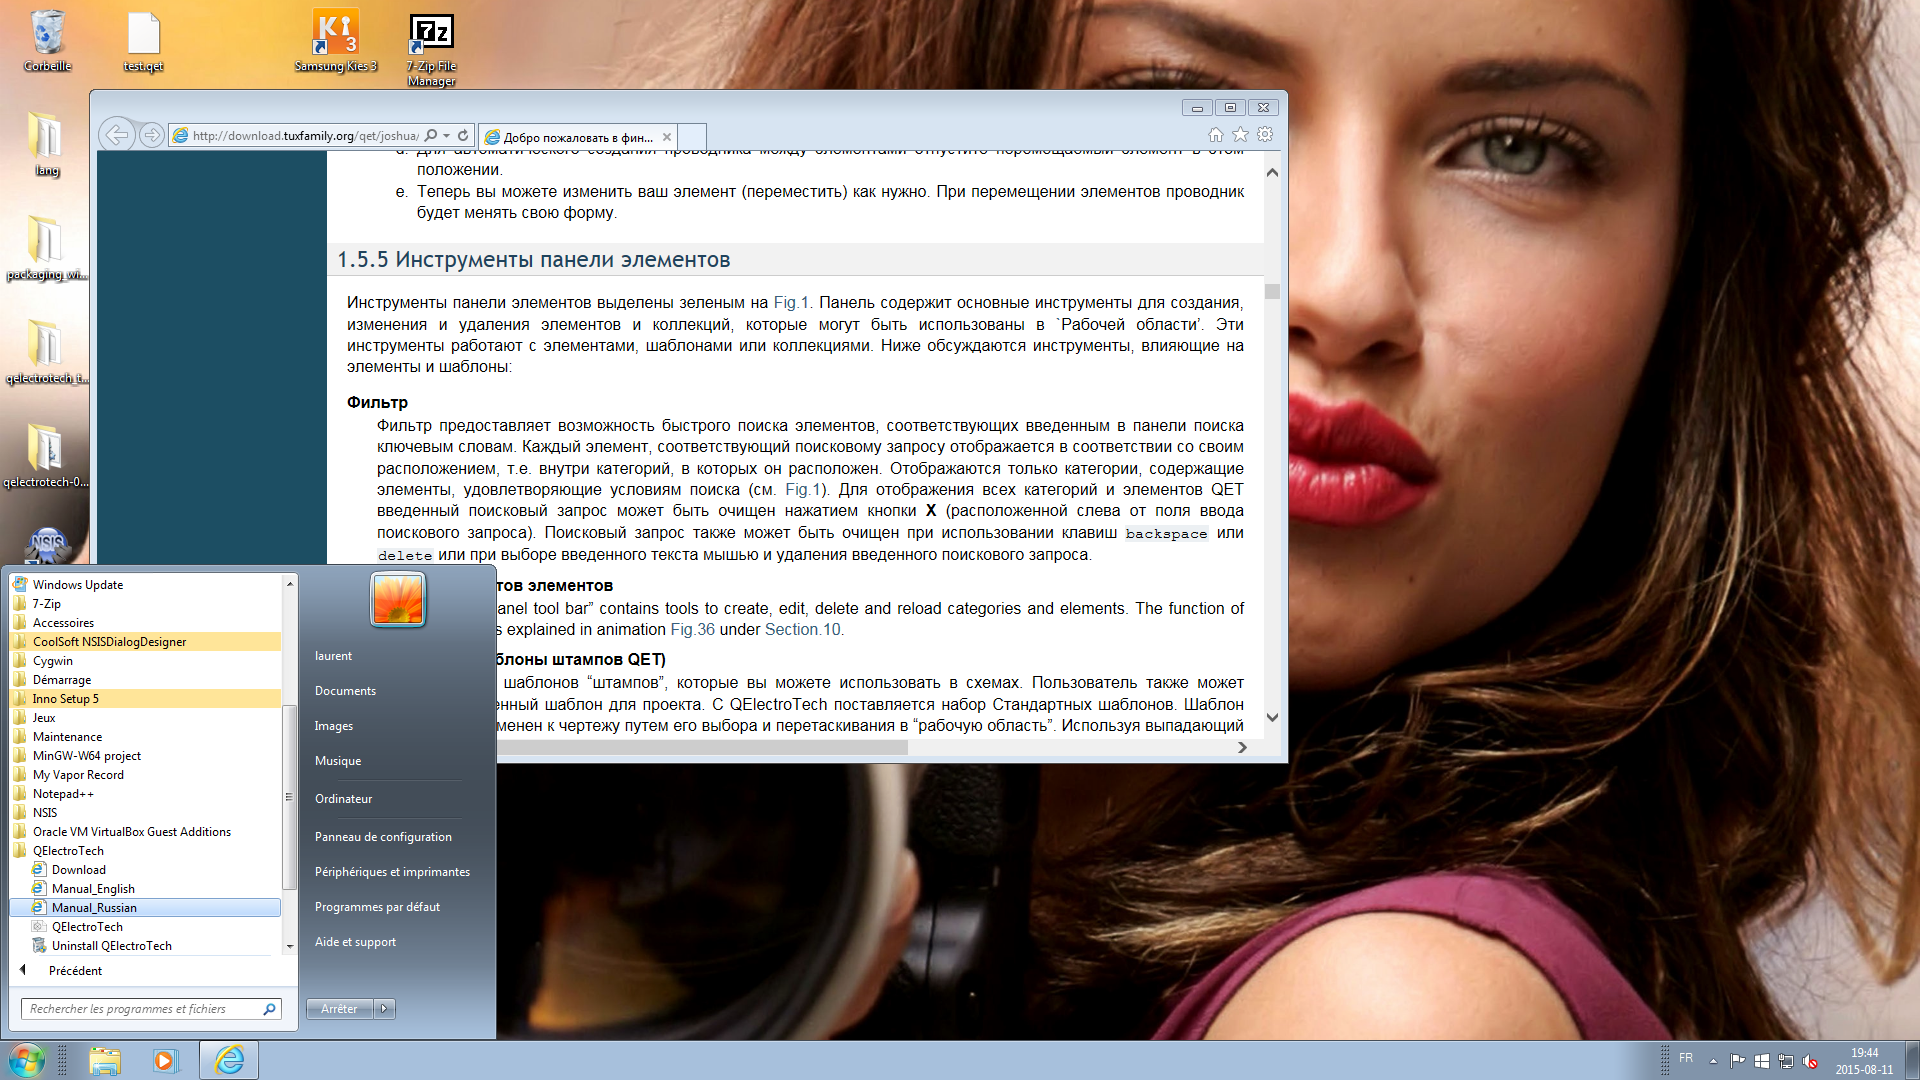 http://download.tuxfamily.org/qet/forum_img/nsis_Qet_online_manual_ru.png